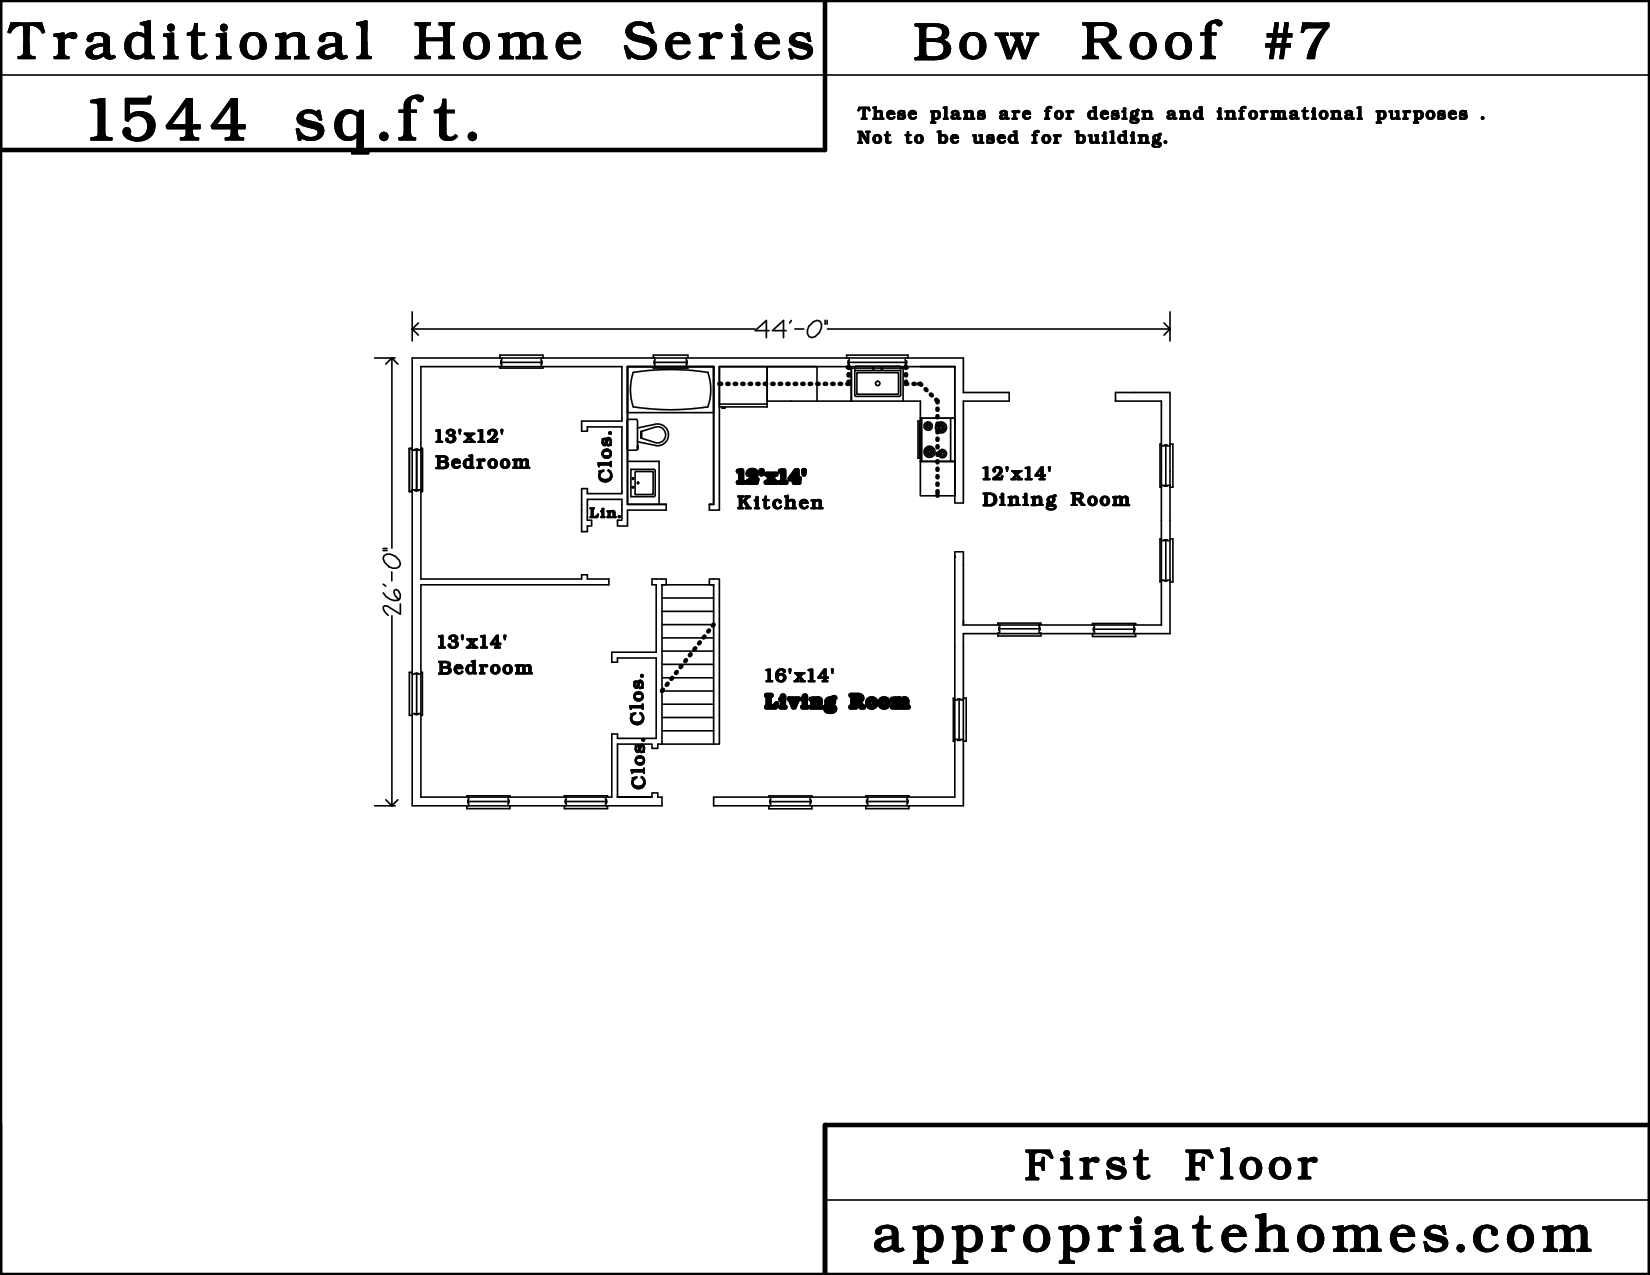 bow house plans 28 images bow house plans 28 images ForBow House Plans